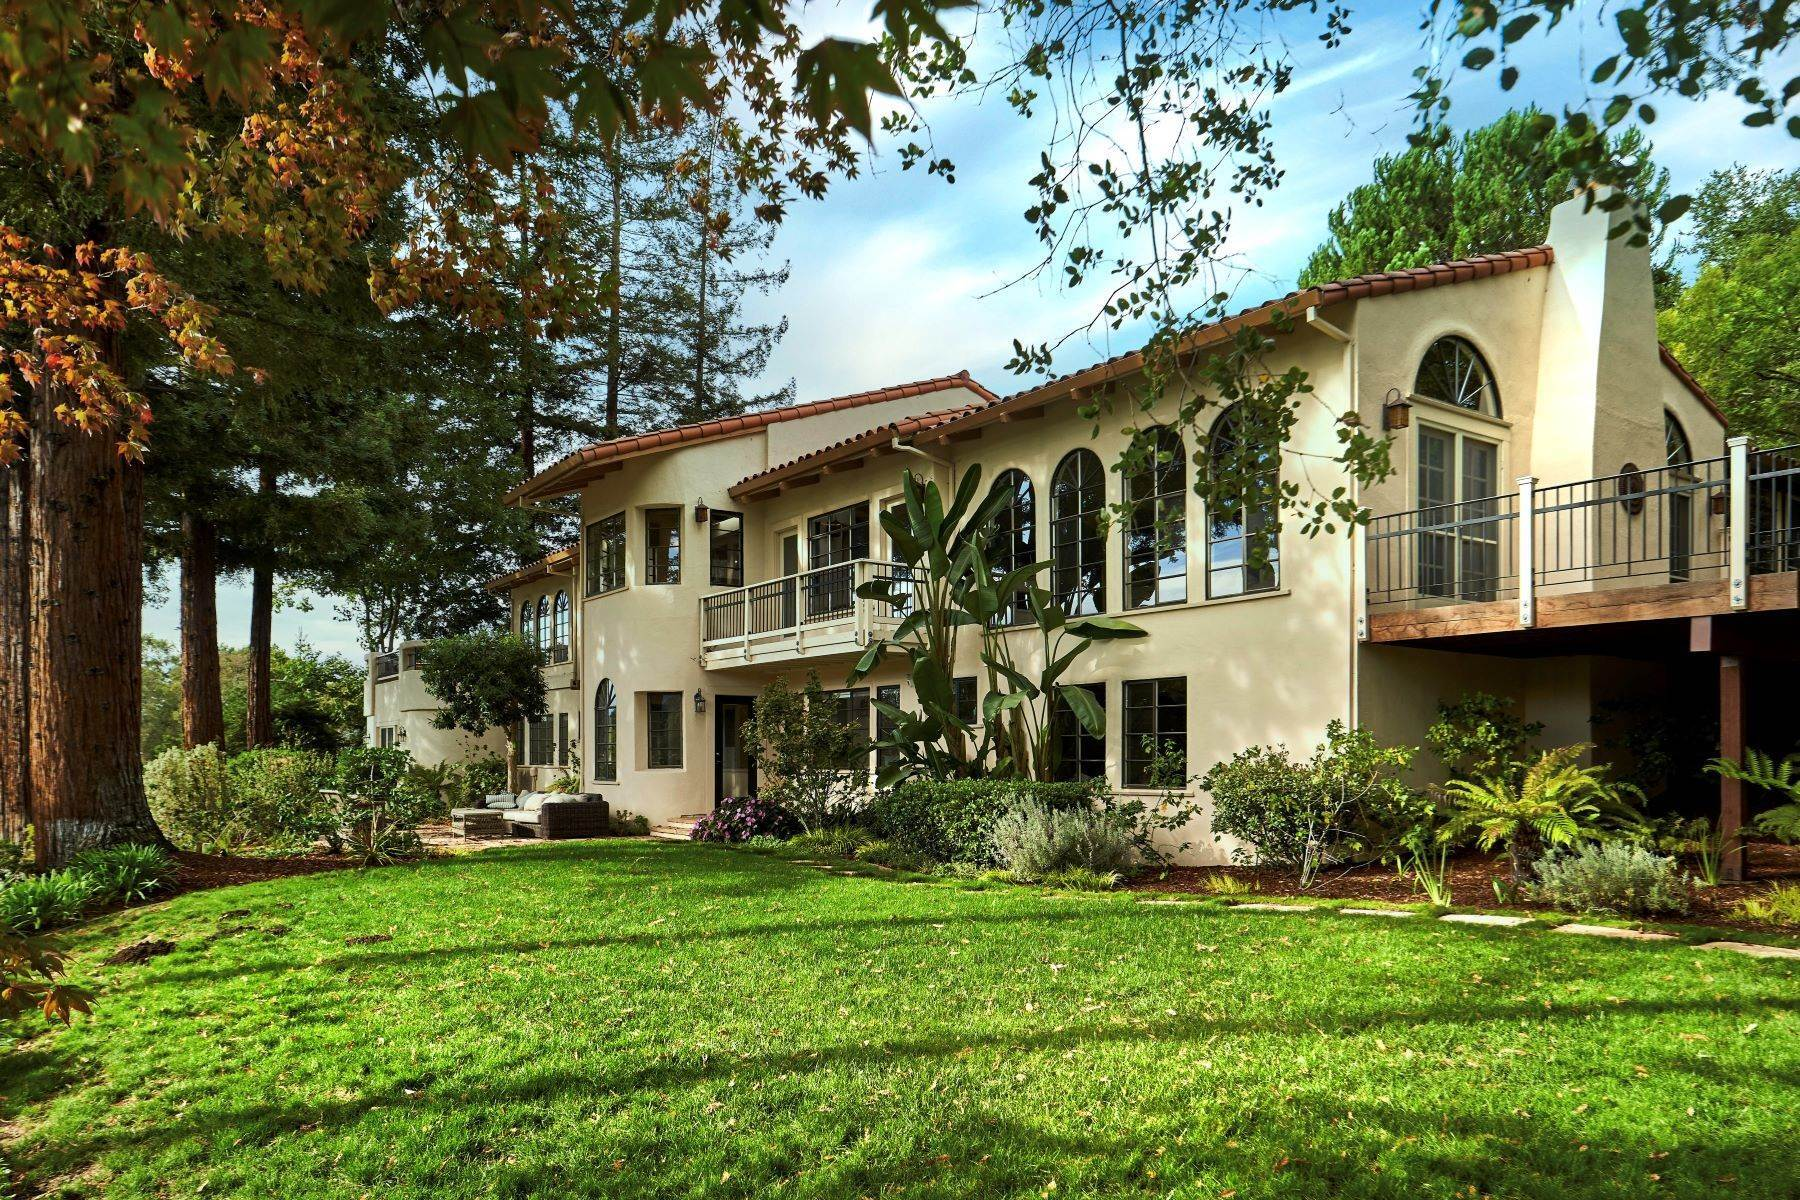 Single Family Homes for Sale at Palo Alto Extraordinary 4184 Old Adobe Rd Palo Alto, California 94306 United States